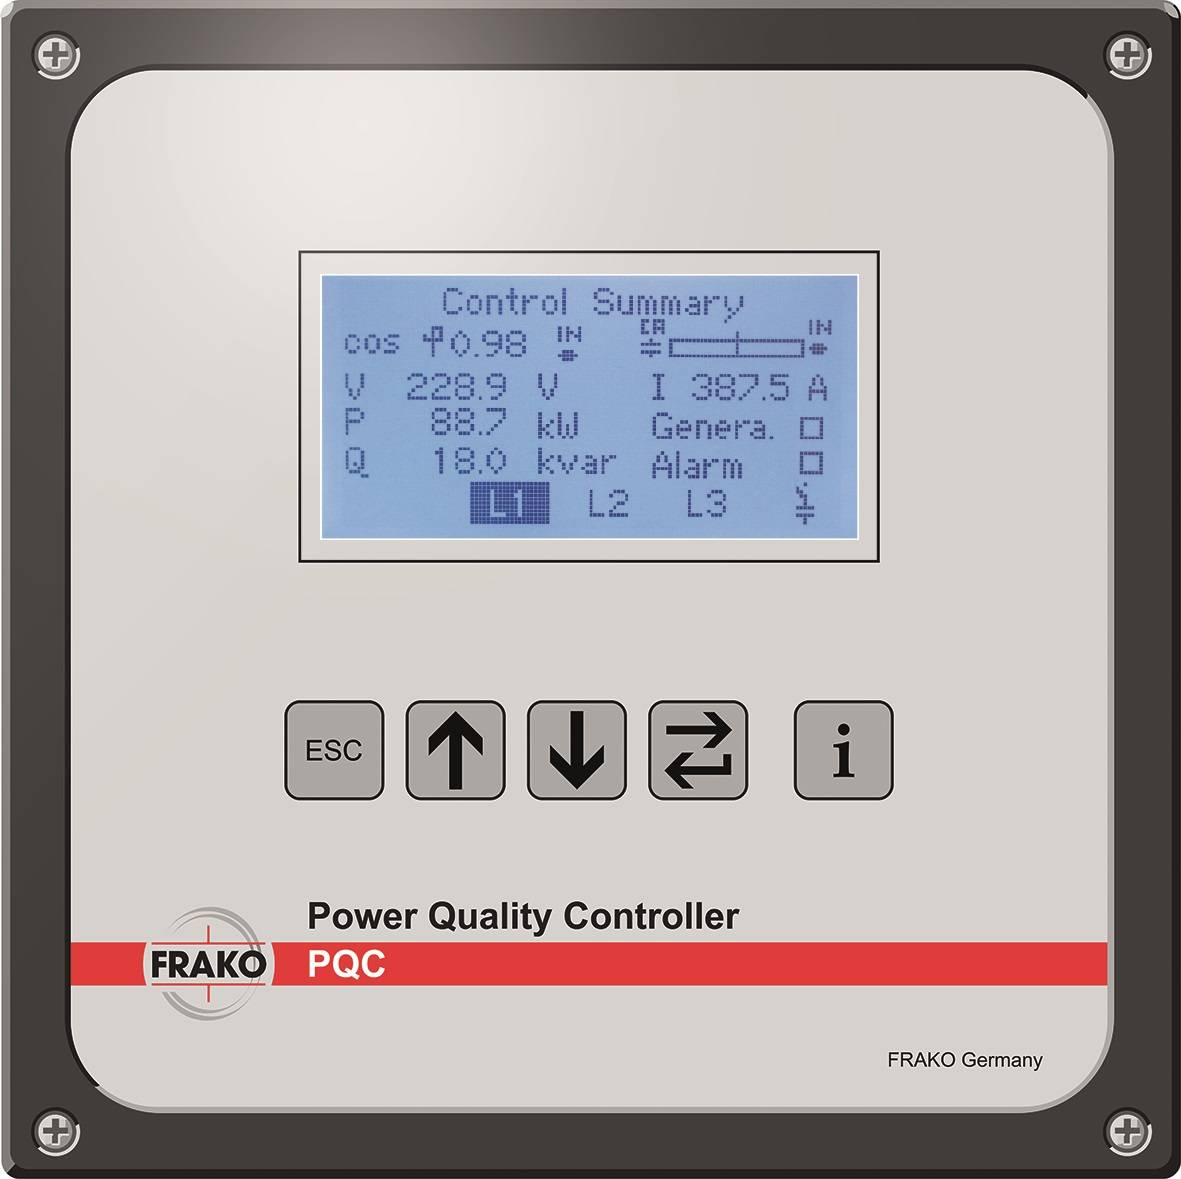 PQC-power quality controller